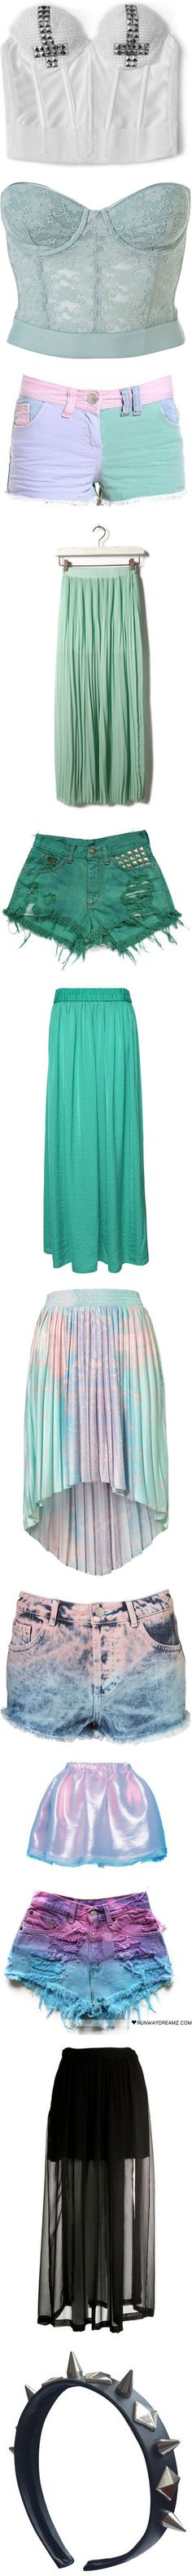 """""""Soft Grunge and Nu Goth 1"""" by lizardkitsch ❤ liked on Polyvore"""